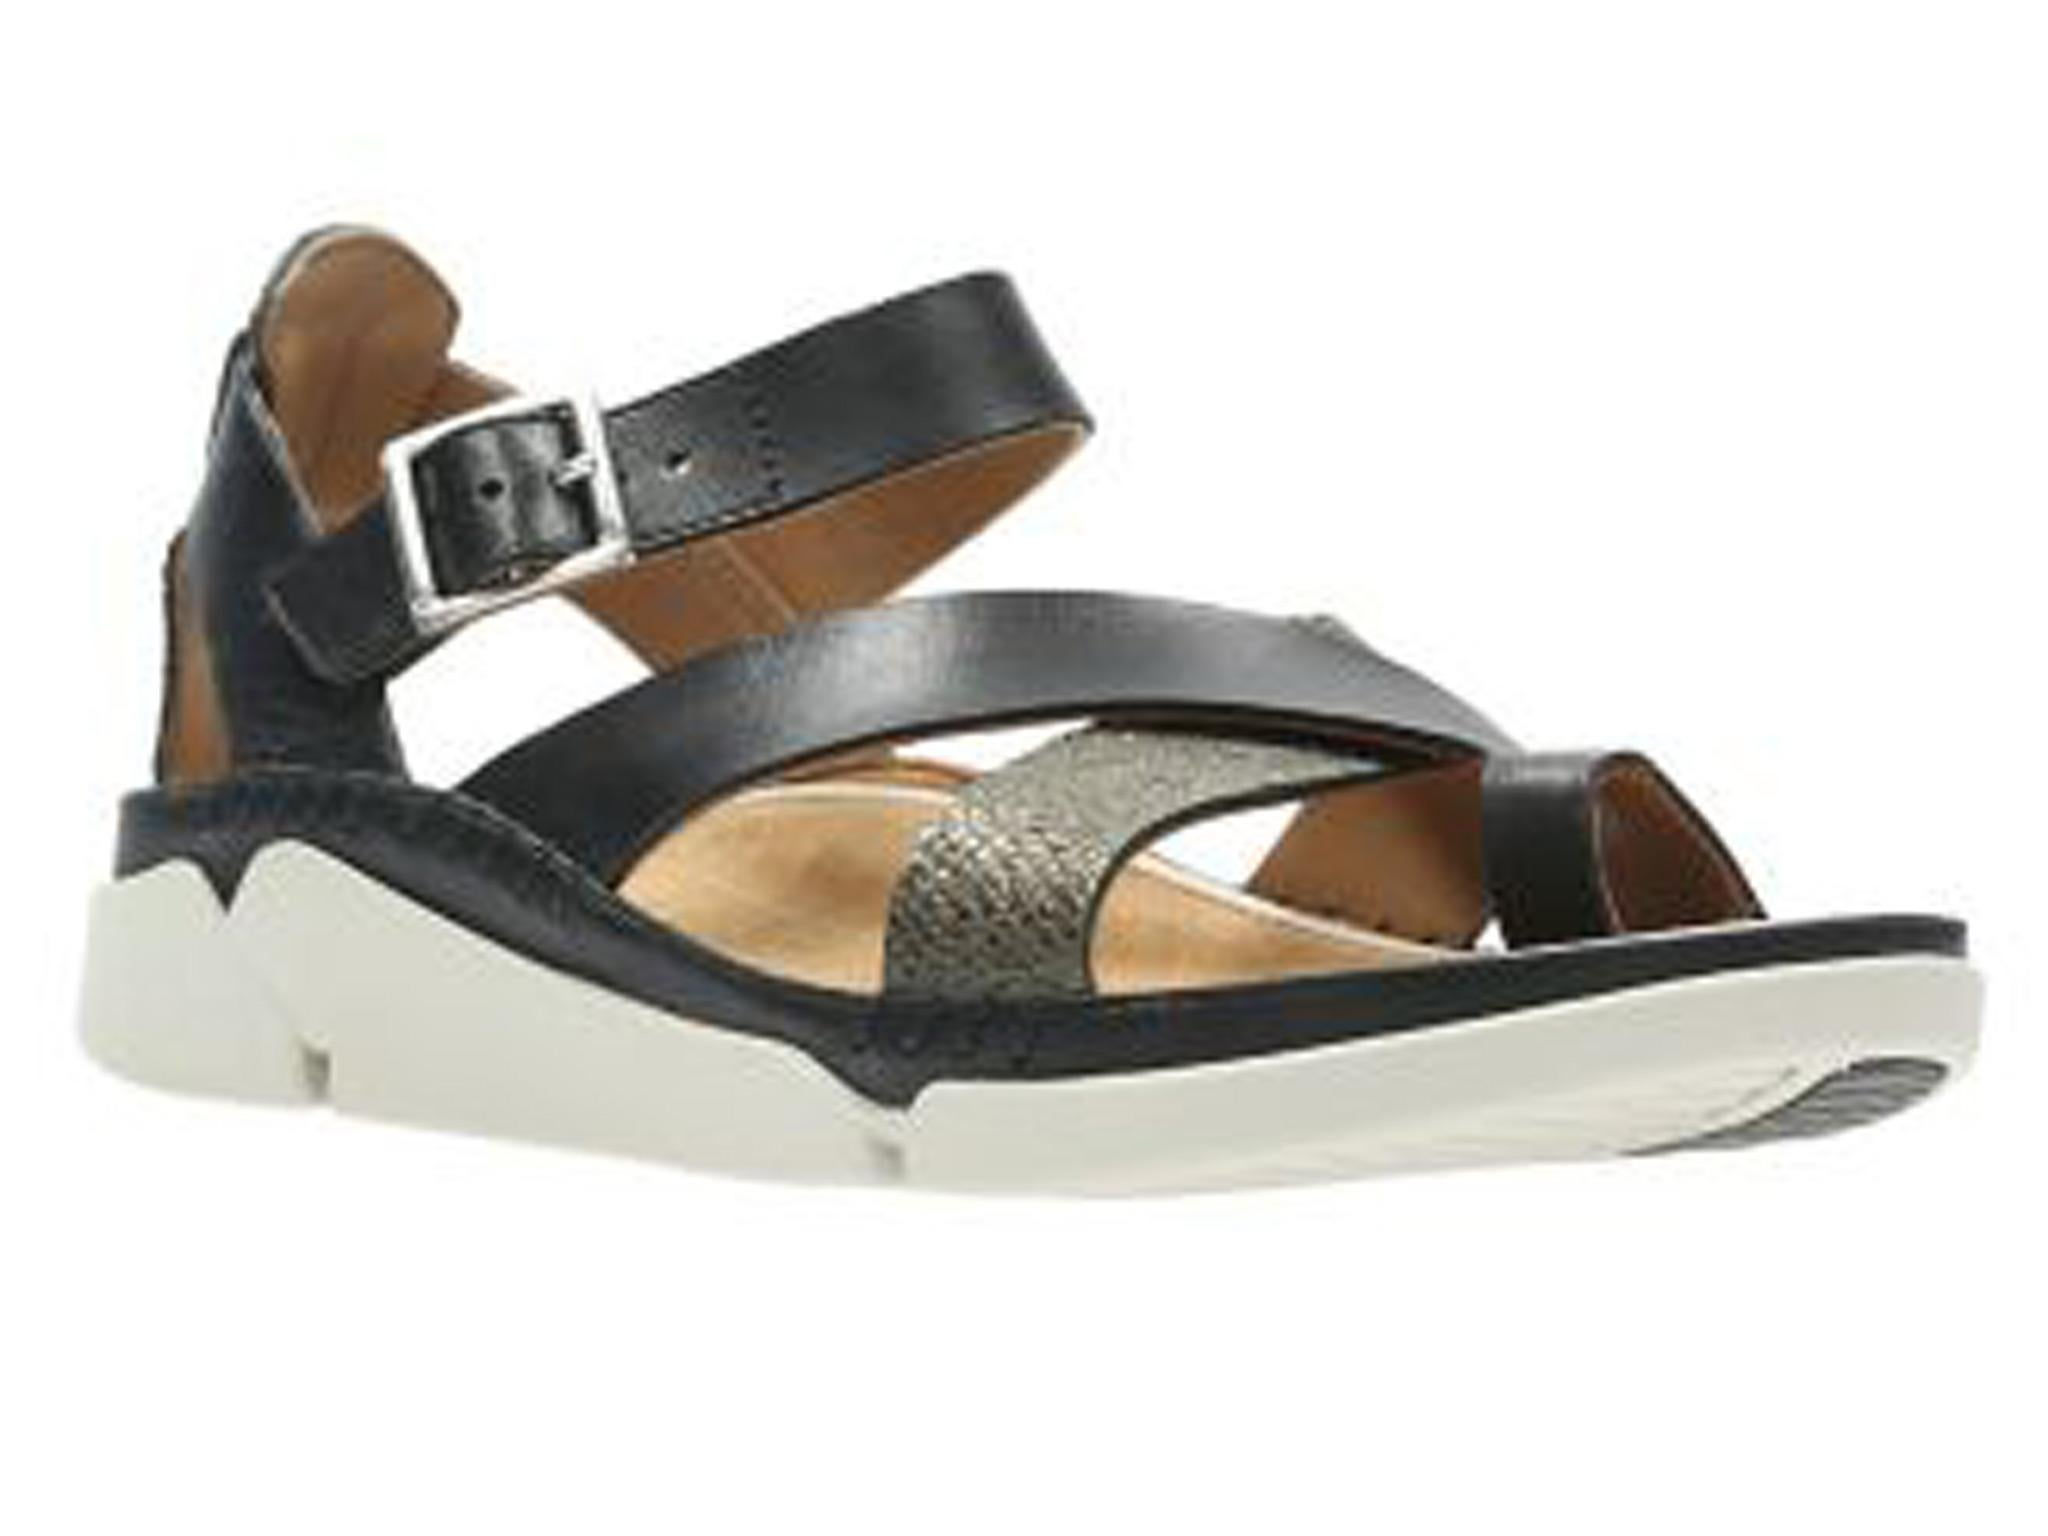 fcbcaab5a00037 Is it a slick city sandal or is it a walking shoe  Clarks has gone all  fashion and swapped their old-school sandals for bright and bold leather  numbers.